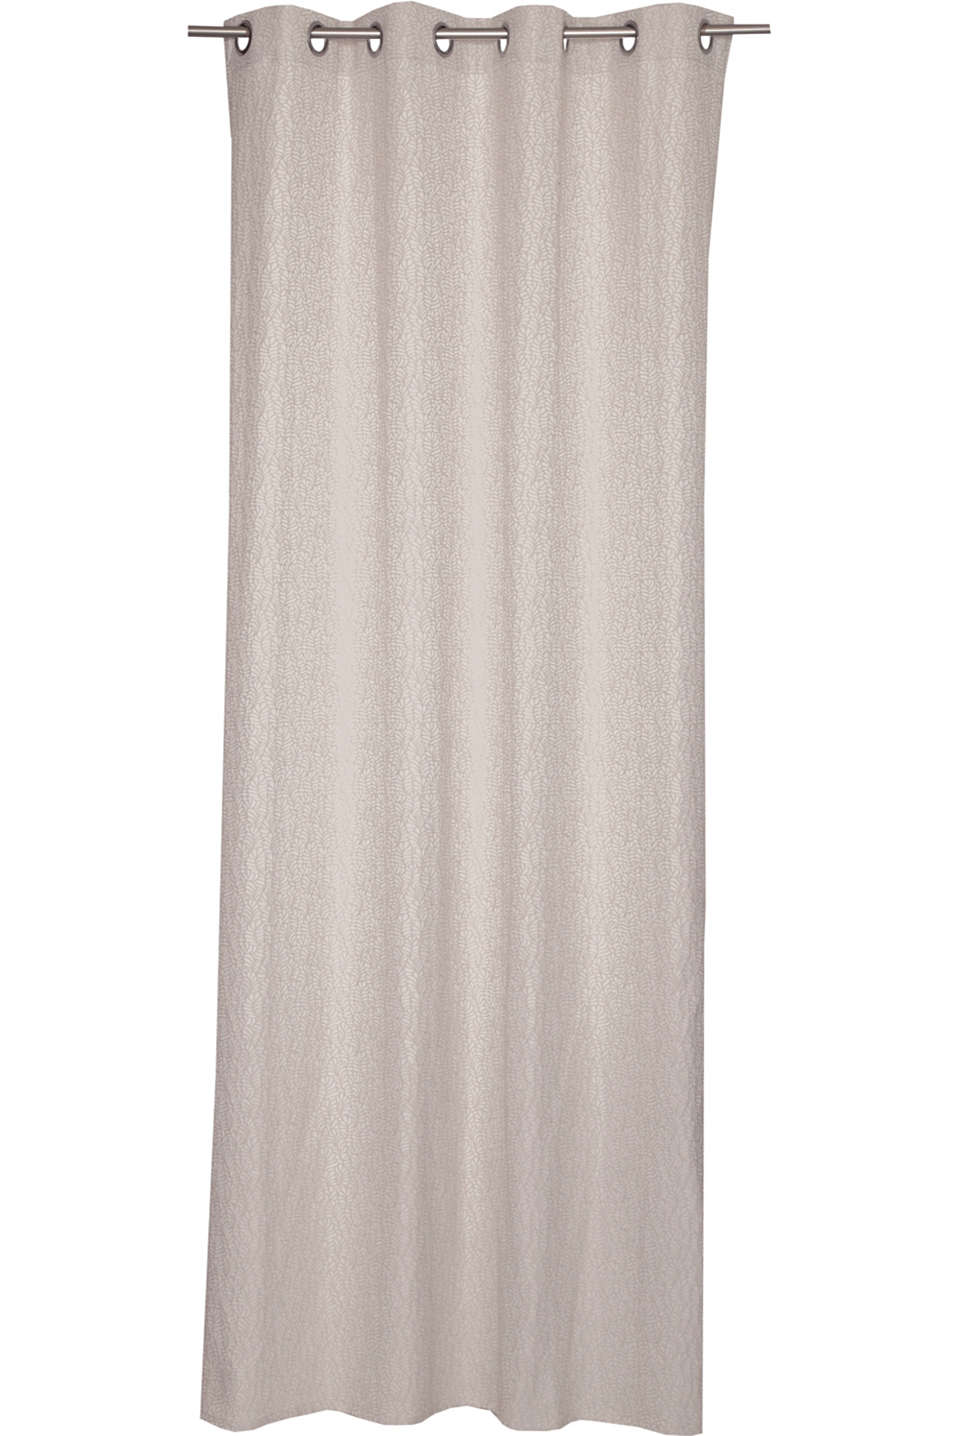 Esprit - Jacquard eyelet curtain with a leaf motif